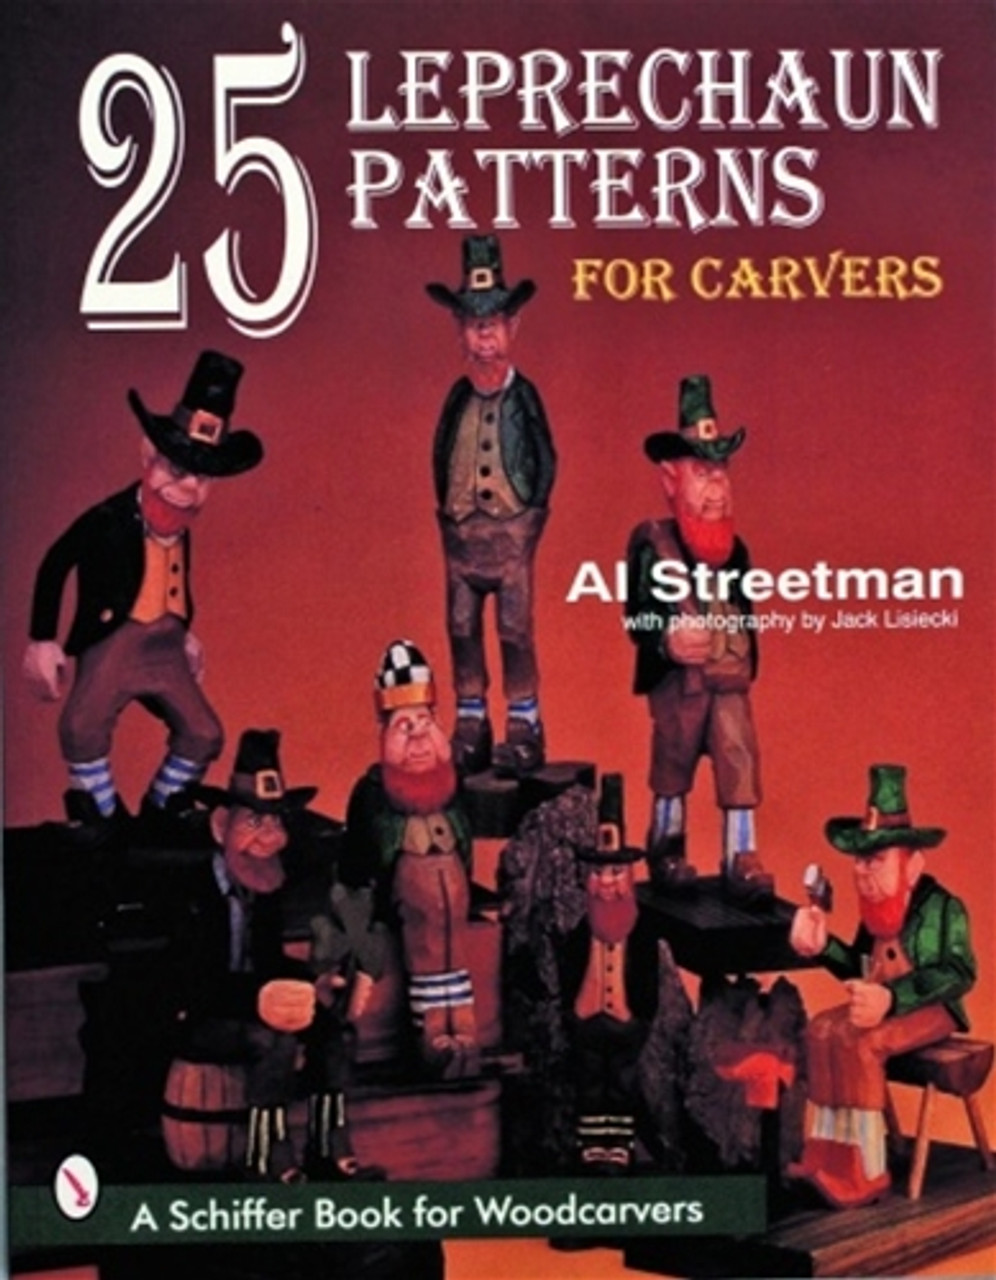 25 Leprechaun Patterns for Carvers